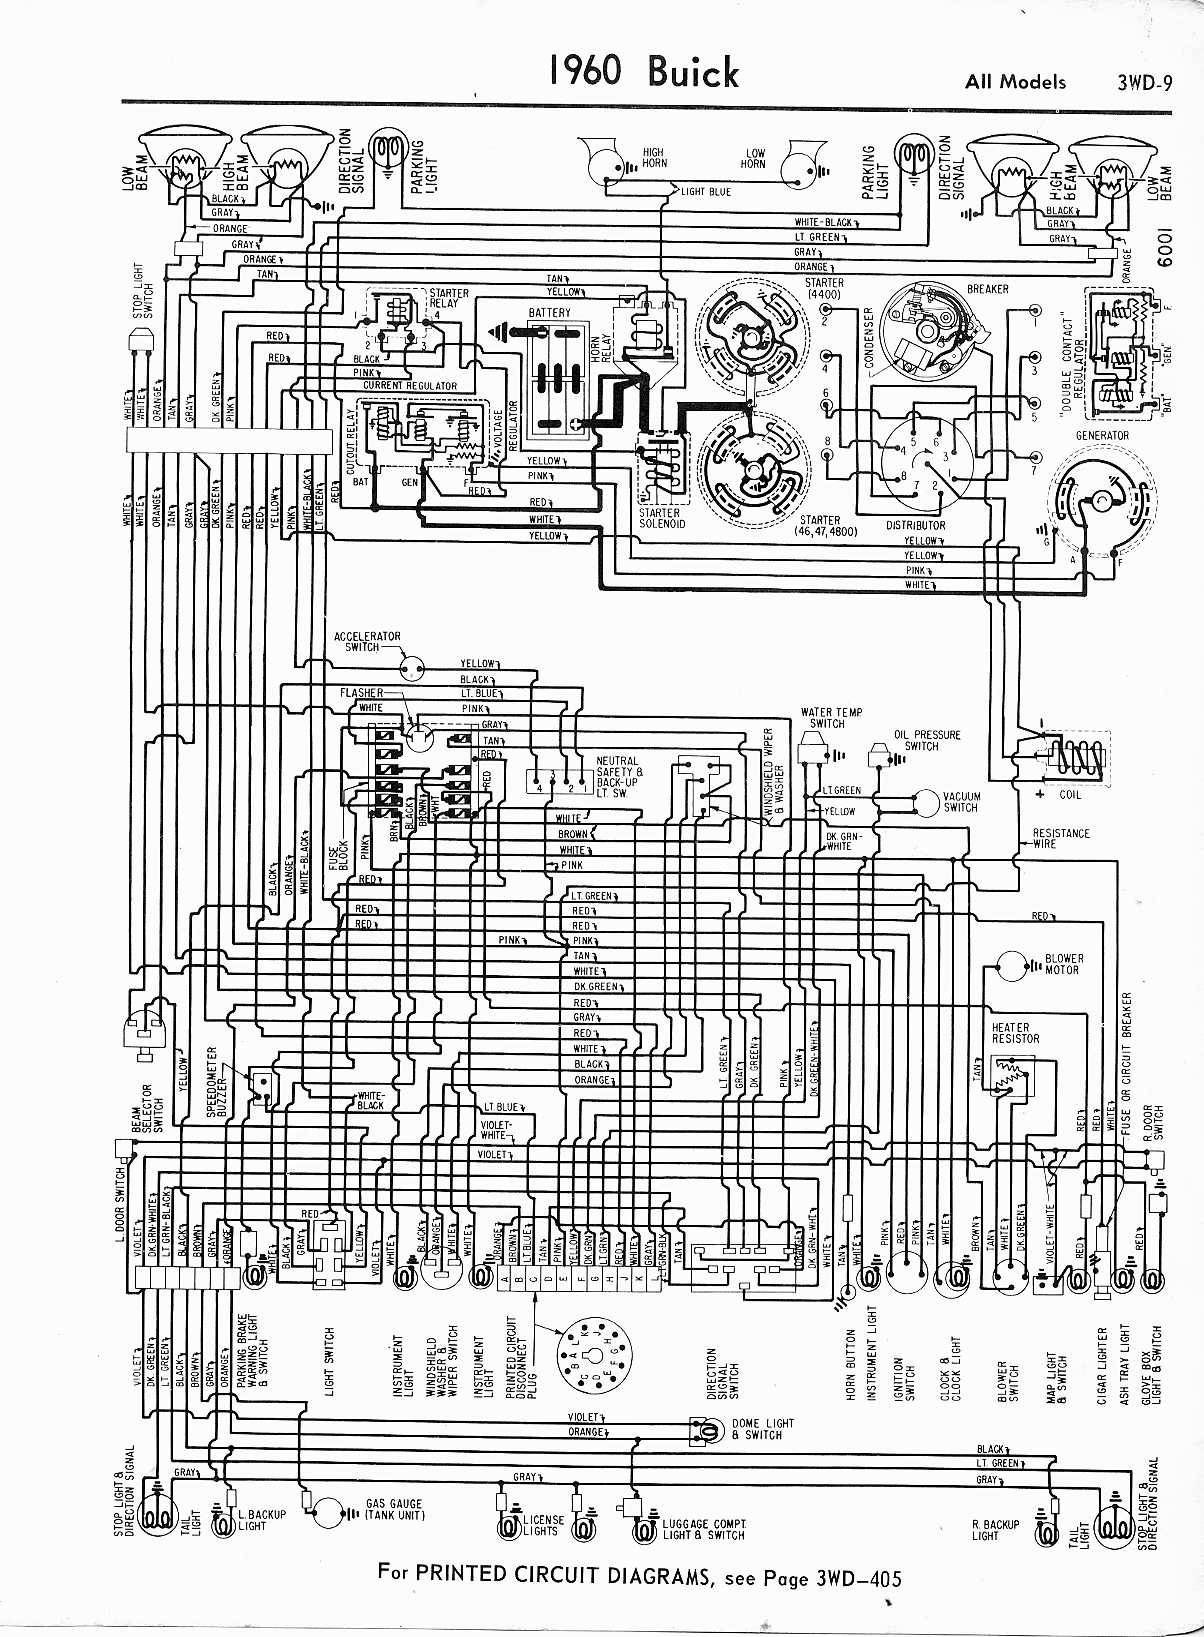 Buick Wiring Diagrams 1957 1965 Of 1958 Plymouth V8 All Models 1960